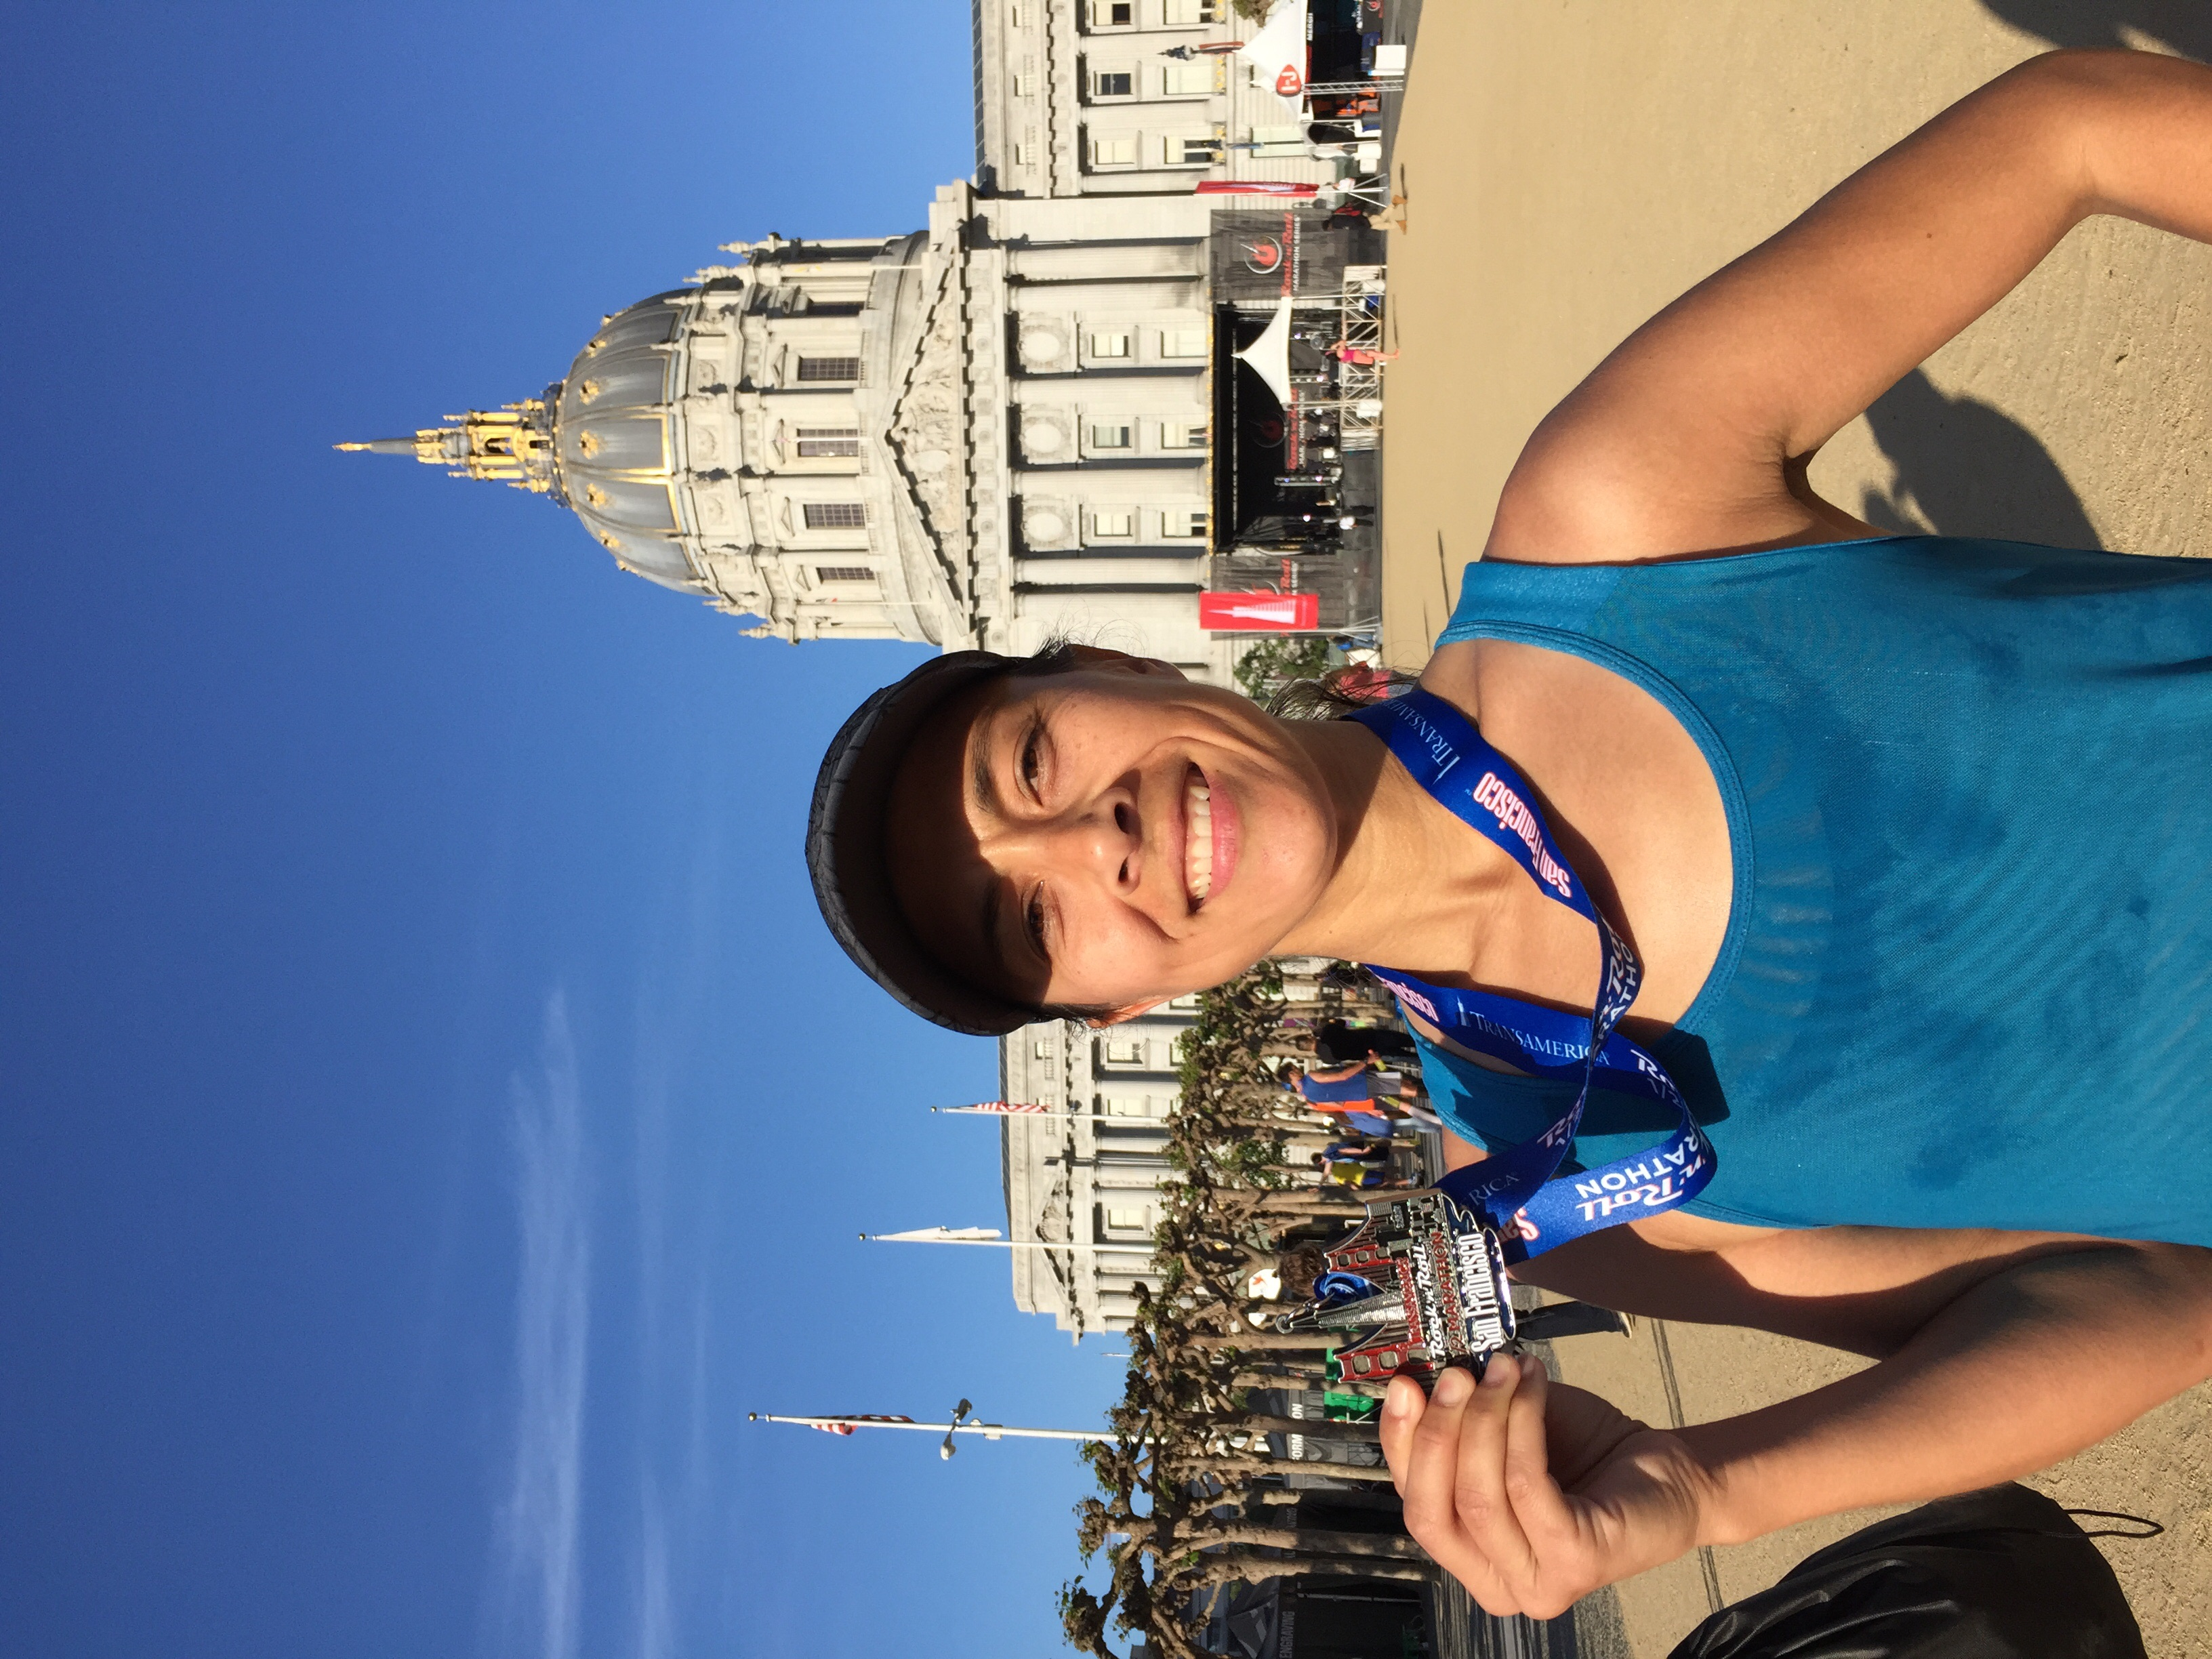 Finisher! I pushed my fears of San Francisco hills aside and conquered each one...with a smile